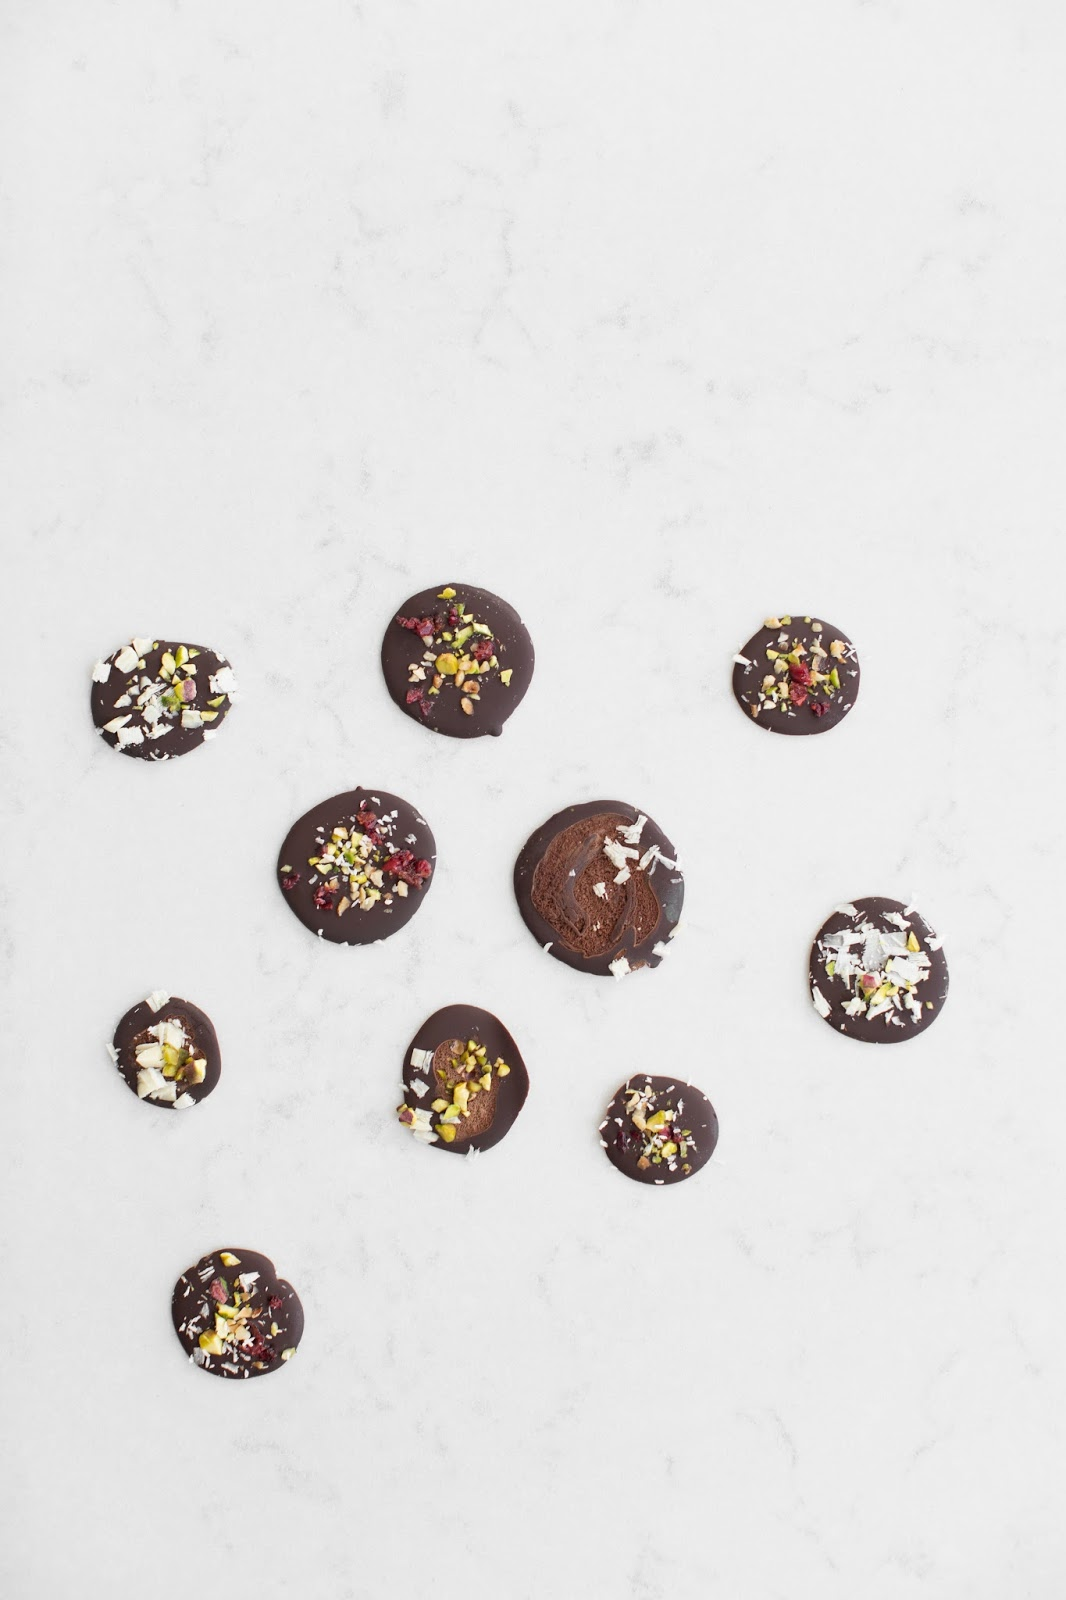 HOW TO MAKE HOMEMADE CHOCOLATE BUTTONS IN MINUTES